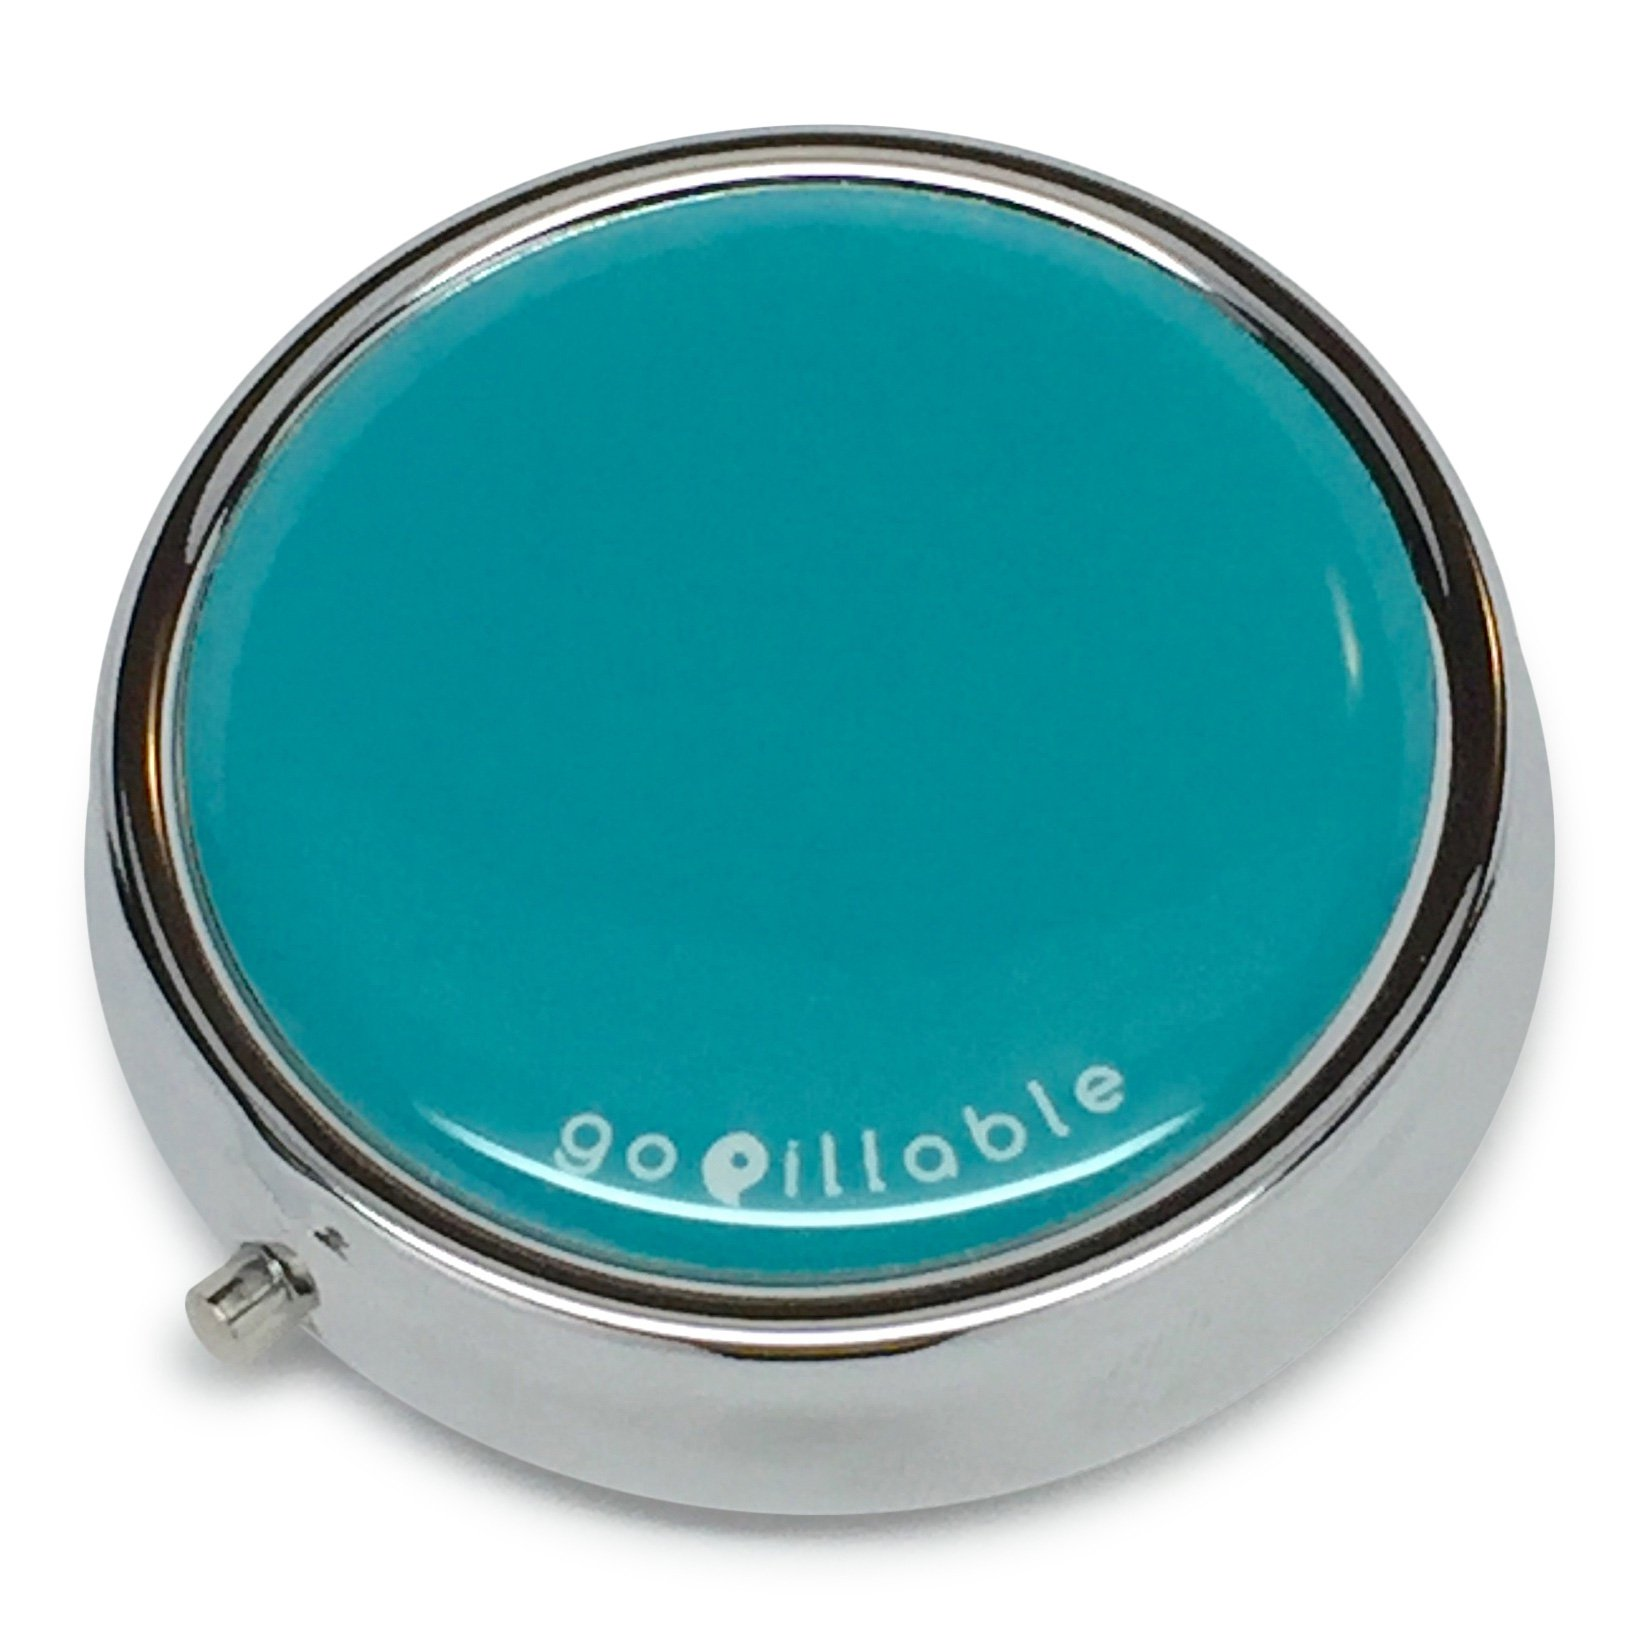 gopillable Teal Pill Box for Pocket or Purse